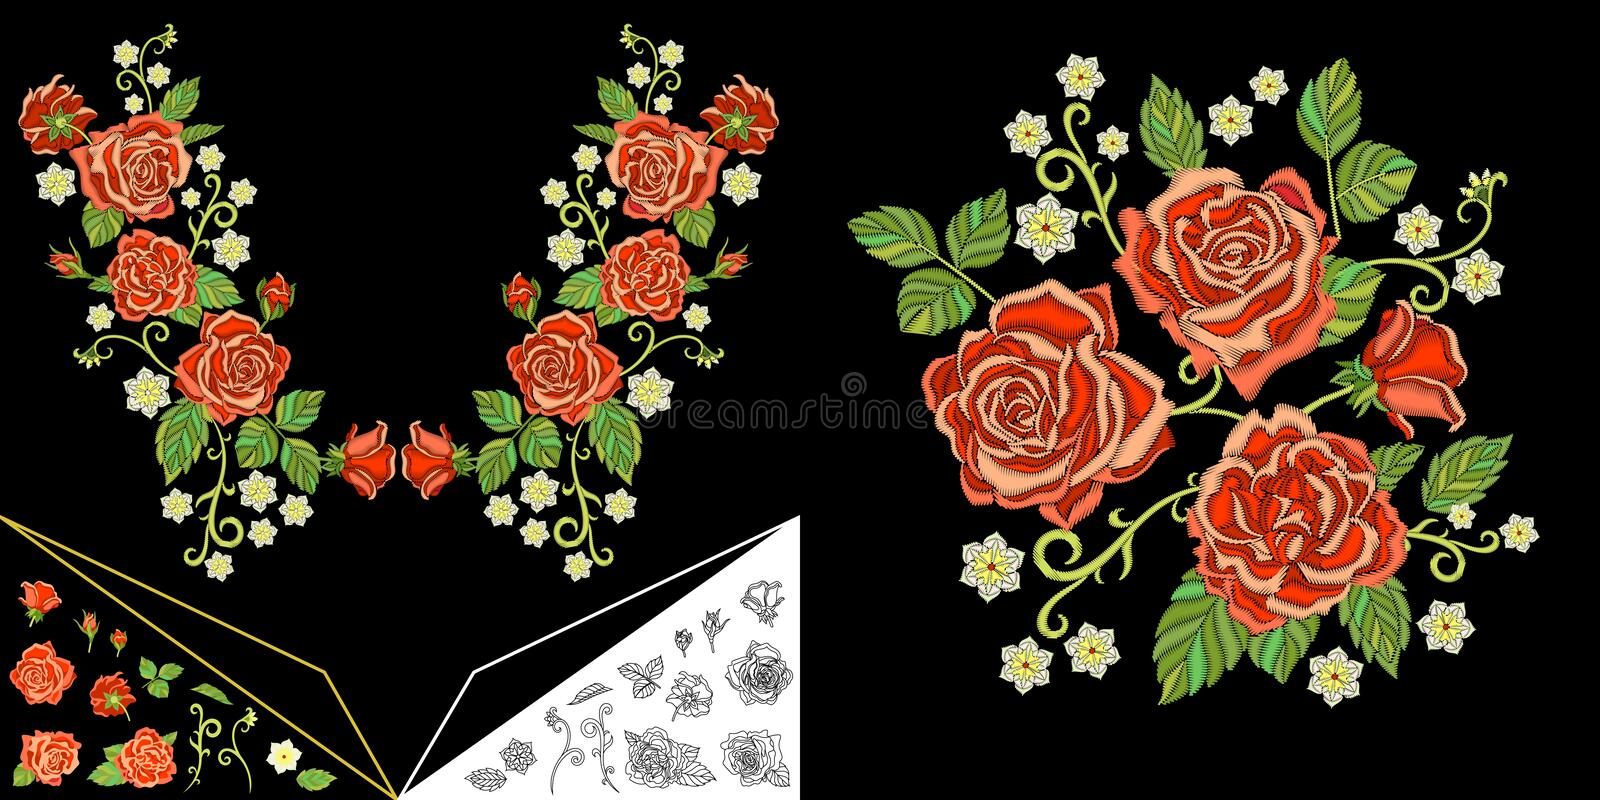 Embroidery roses and daisy flowers royalty free stock images